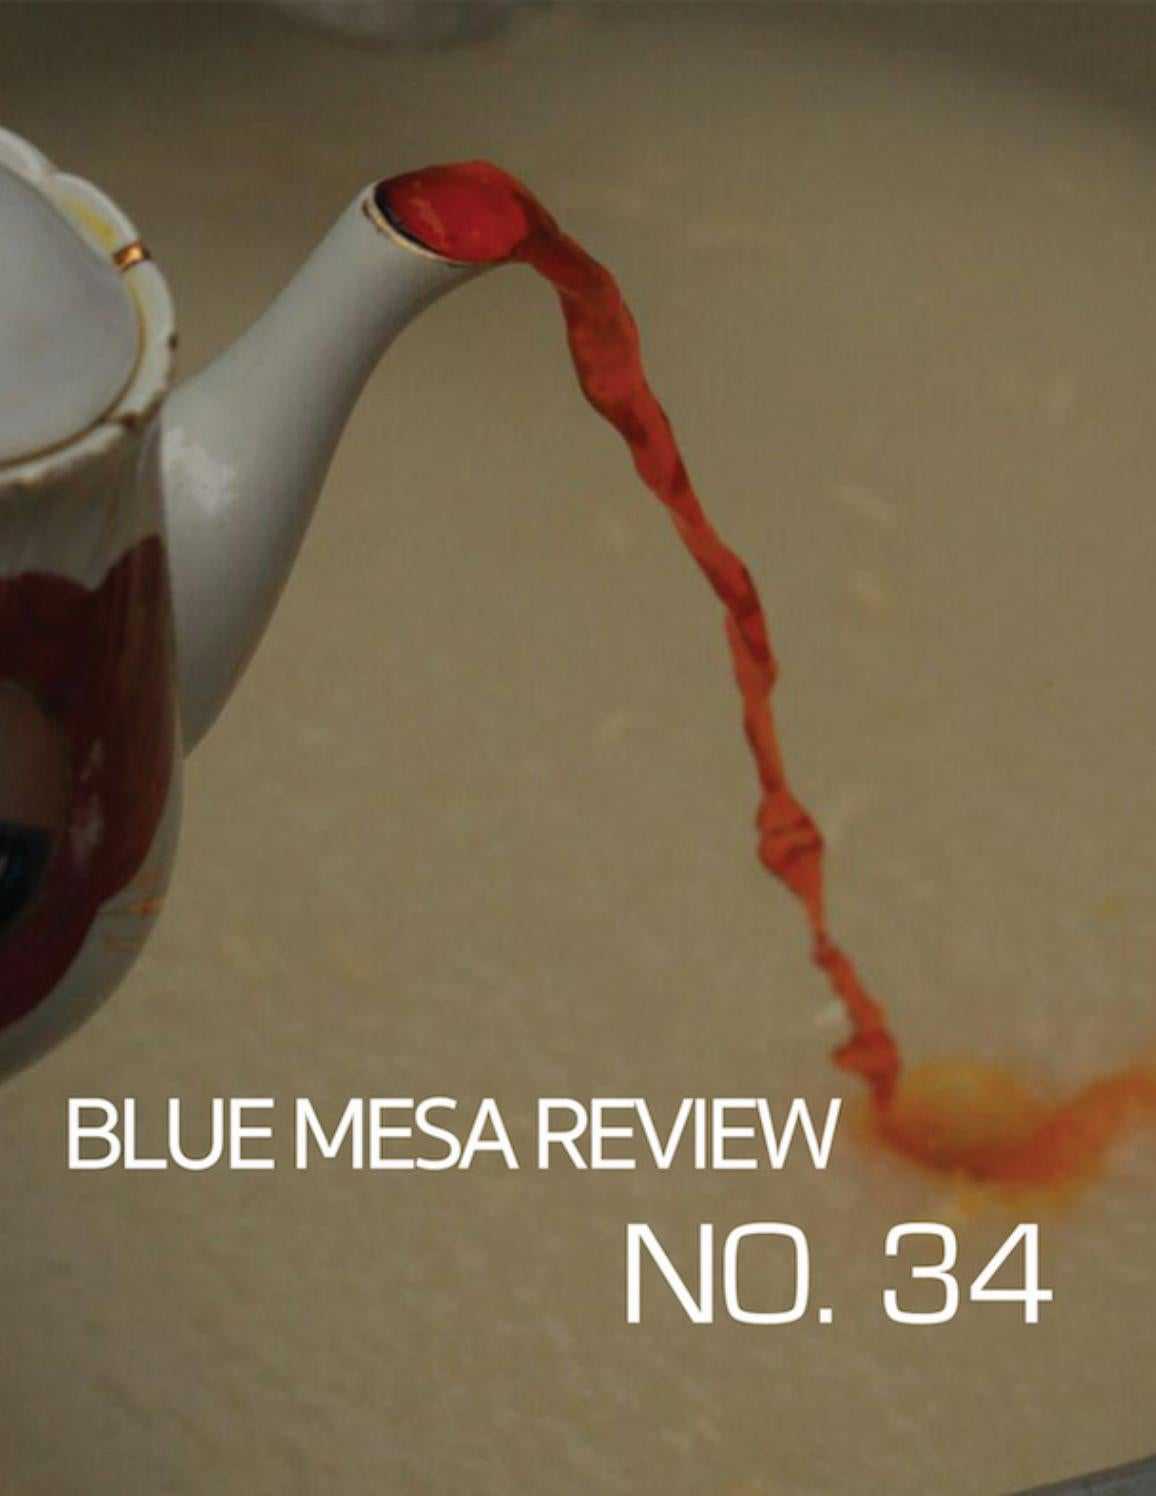 Blue Mesa Review Issue 34 By Issuu Dogmaster Trainers Products Electric Fence Fencing